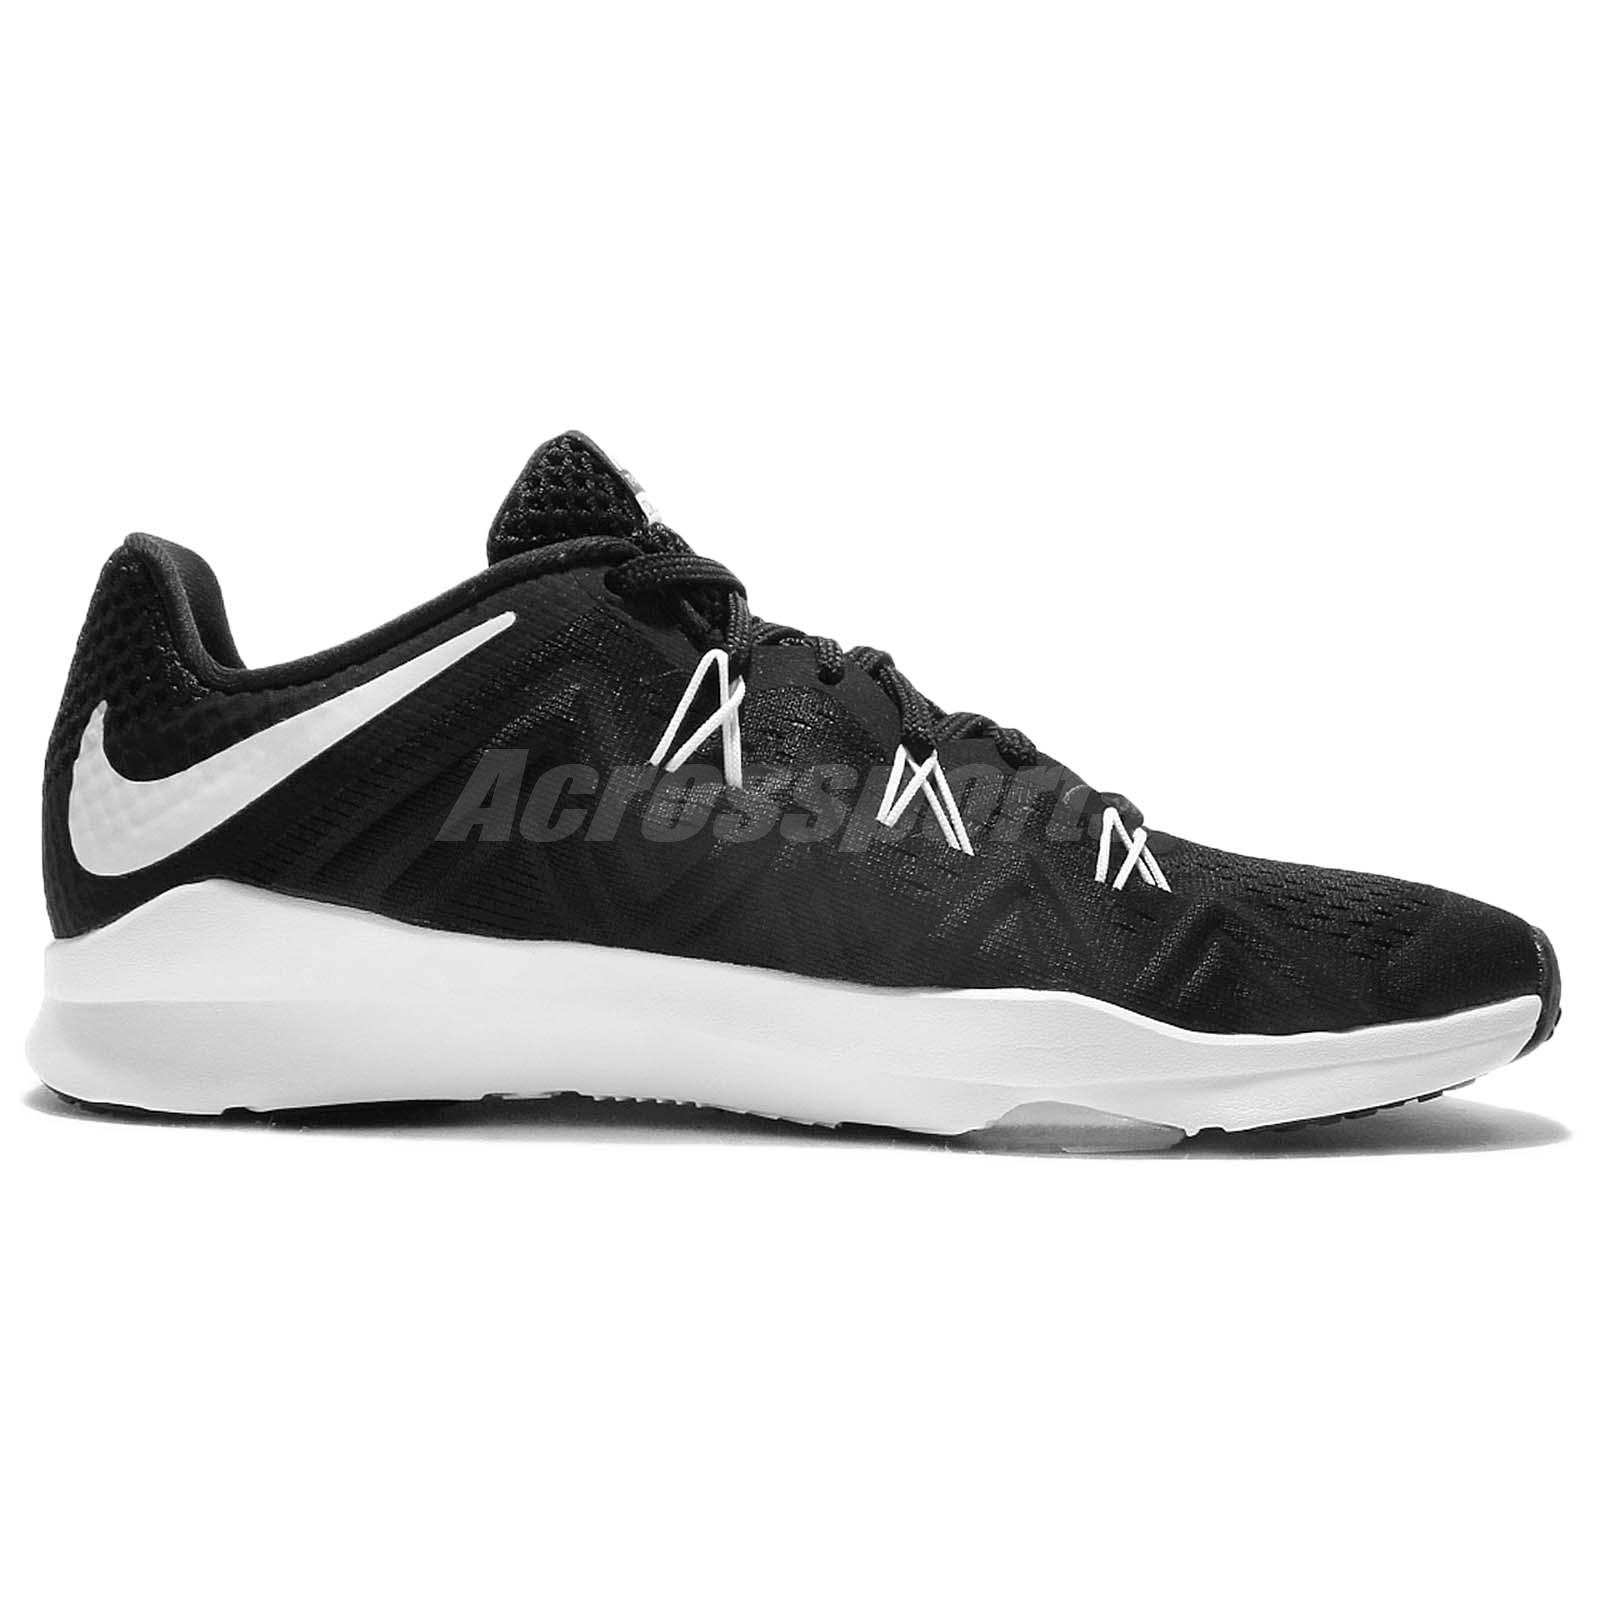 Wmns Nike Zoom Condition TR Black White Women Training Shoes Trainers 852472001